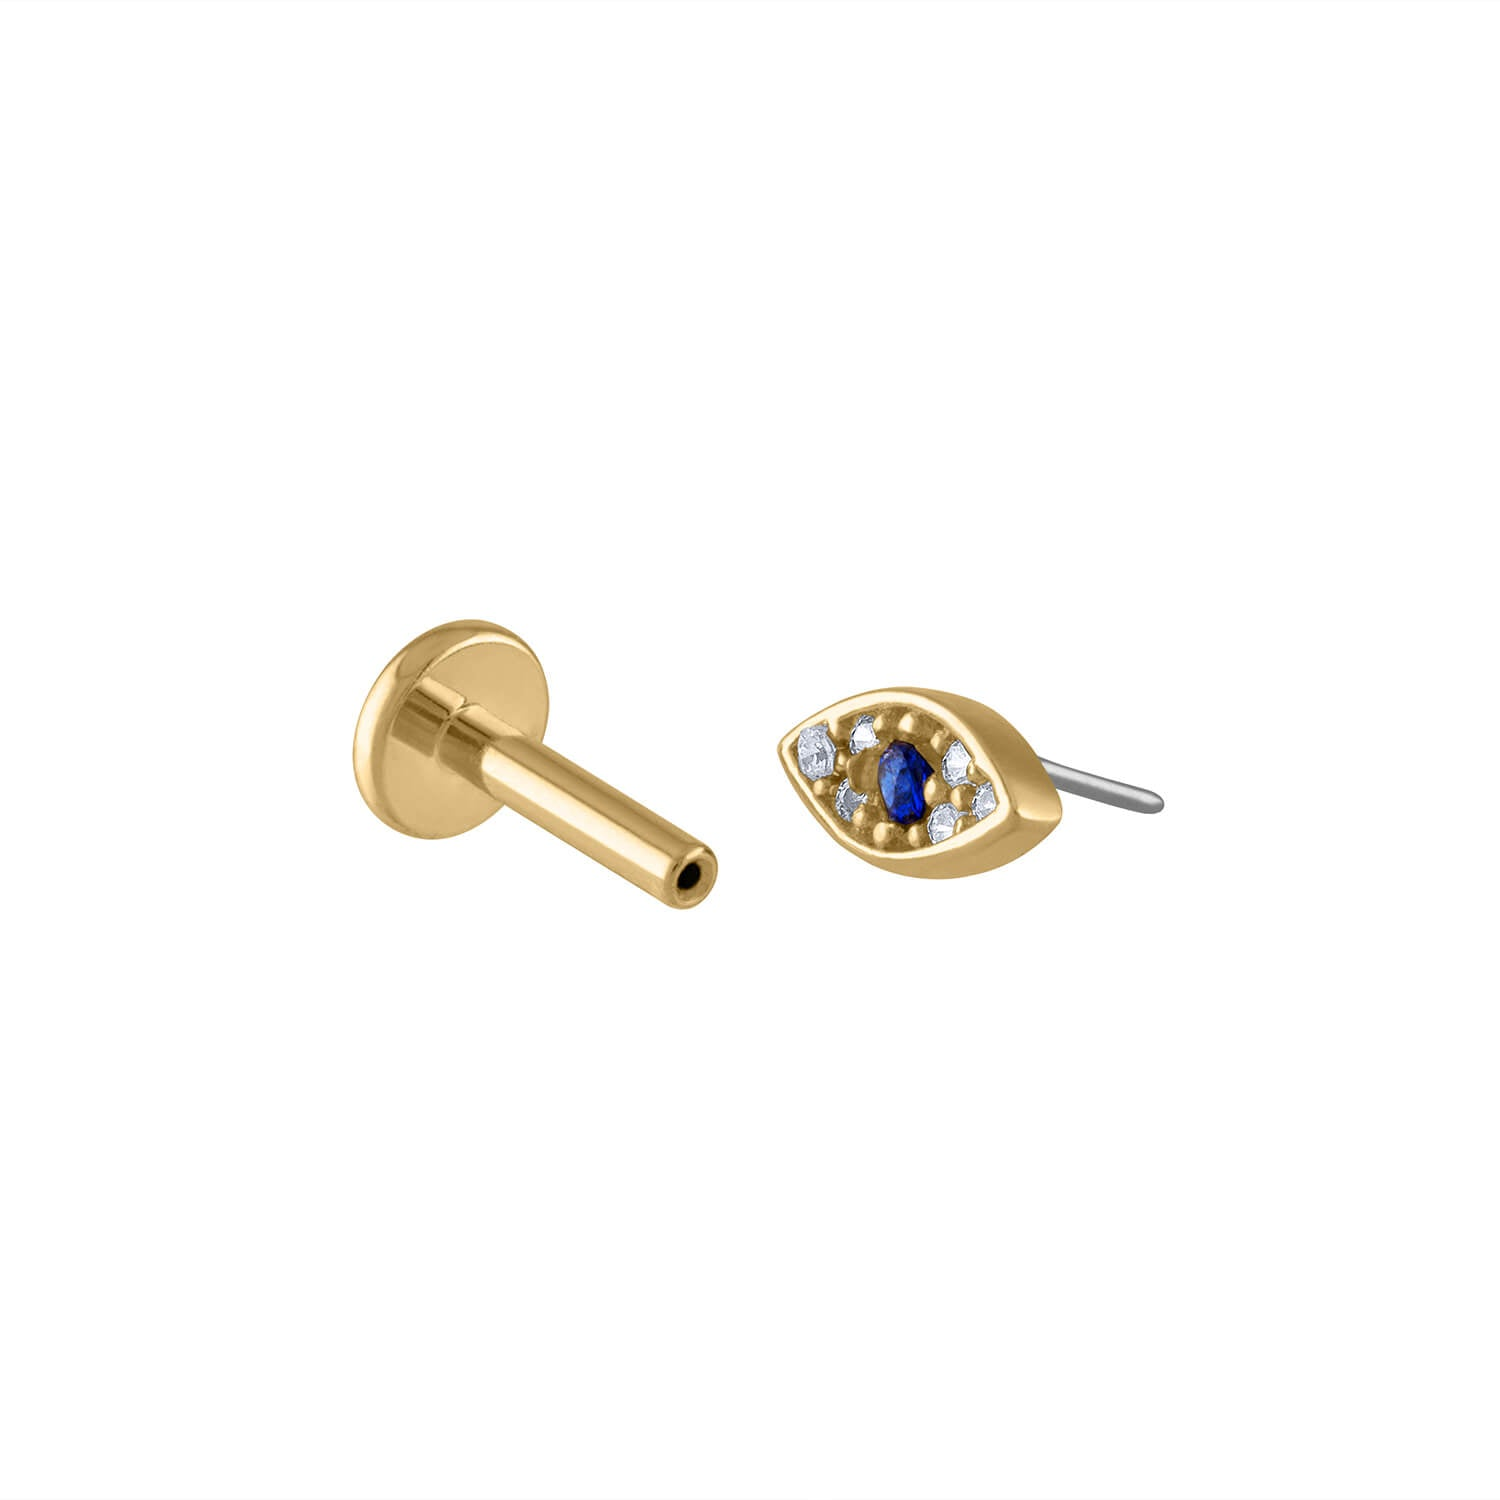 Evil Eye Push Pin Flat Back Earring in Gold